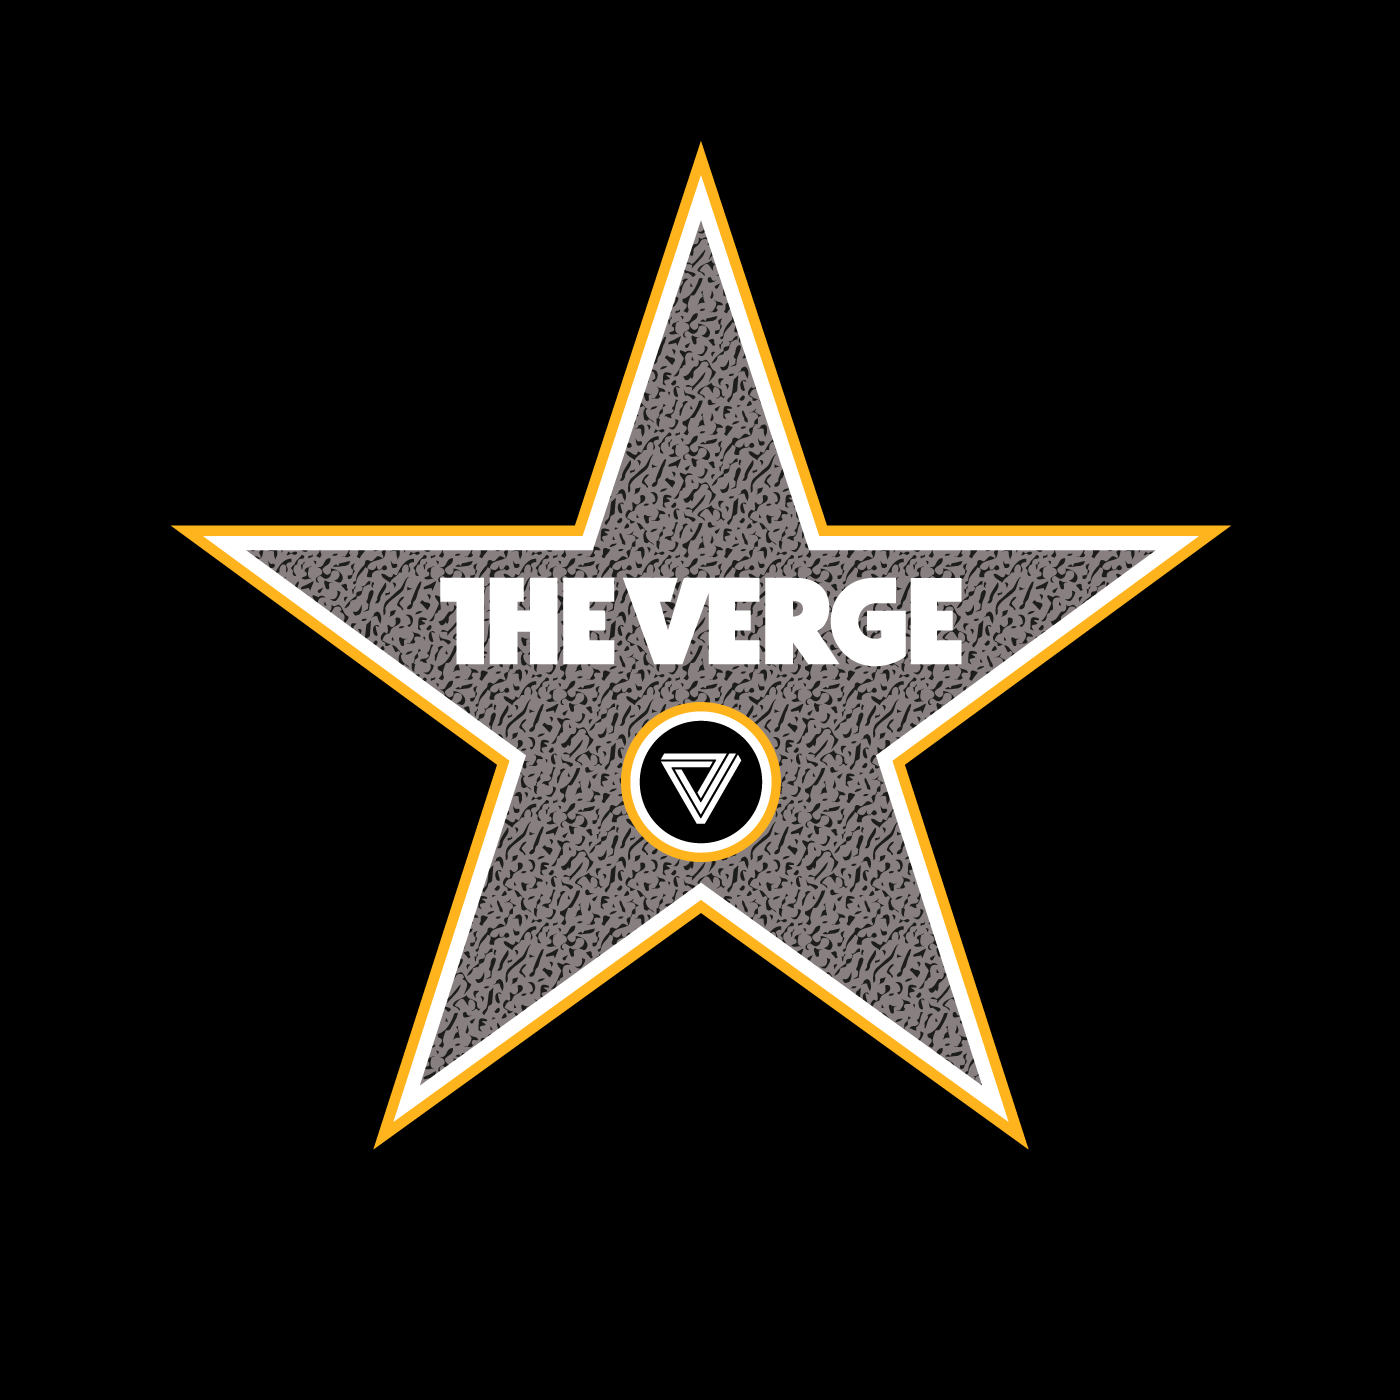 verge-crazy-night-logo-2